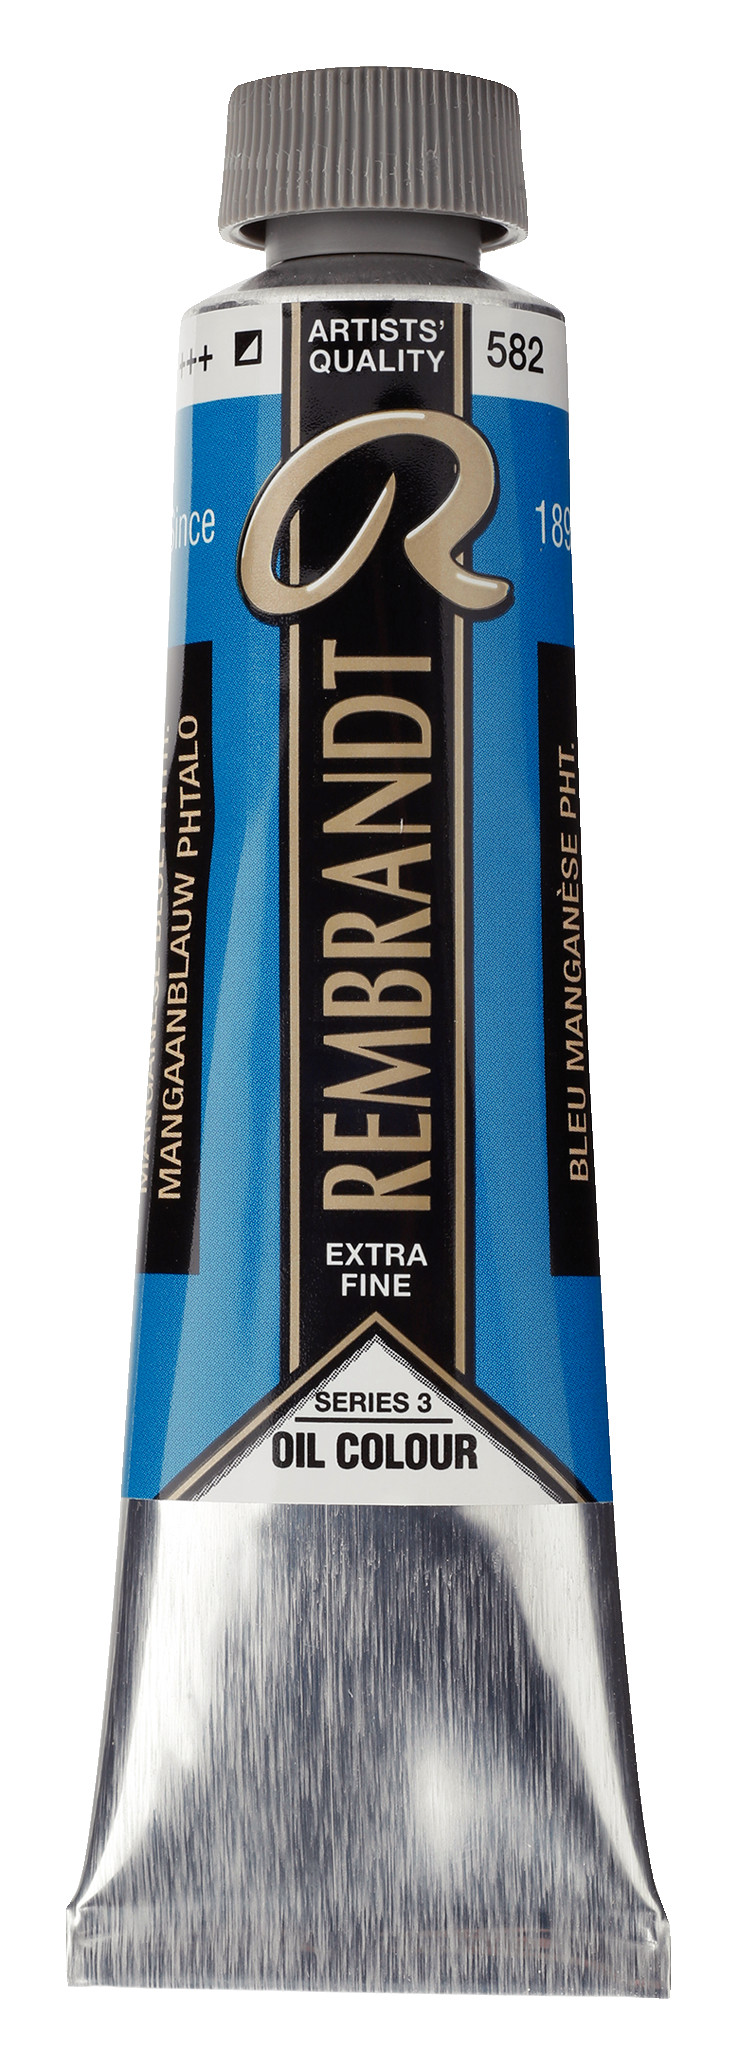 Rembrandt Oil colour Paint Manganese Blue Phthalo (582) 40ml Tube